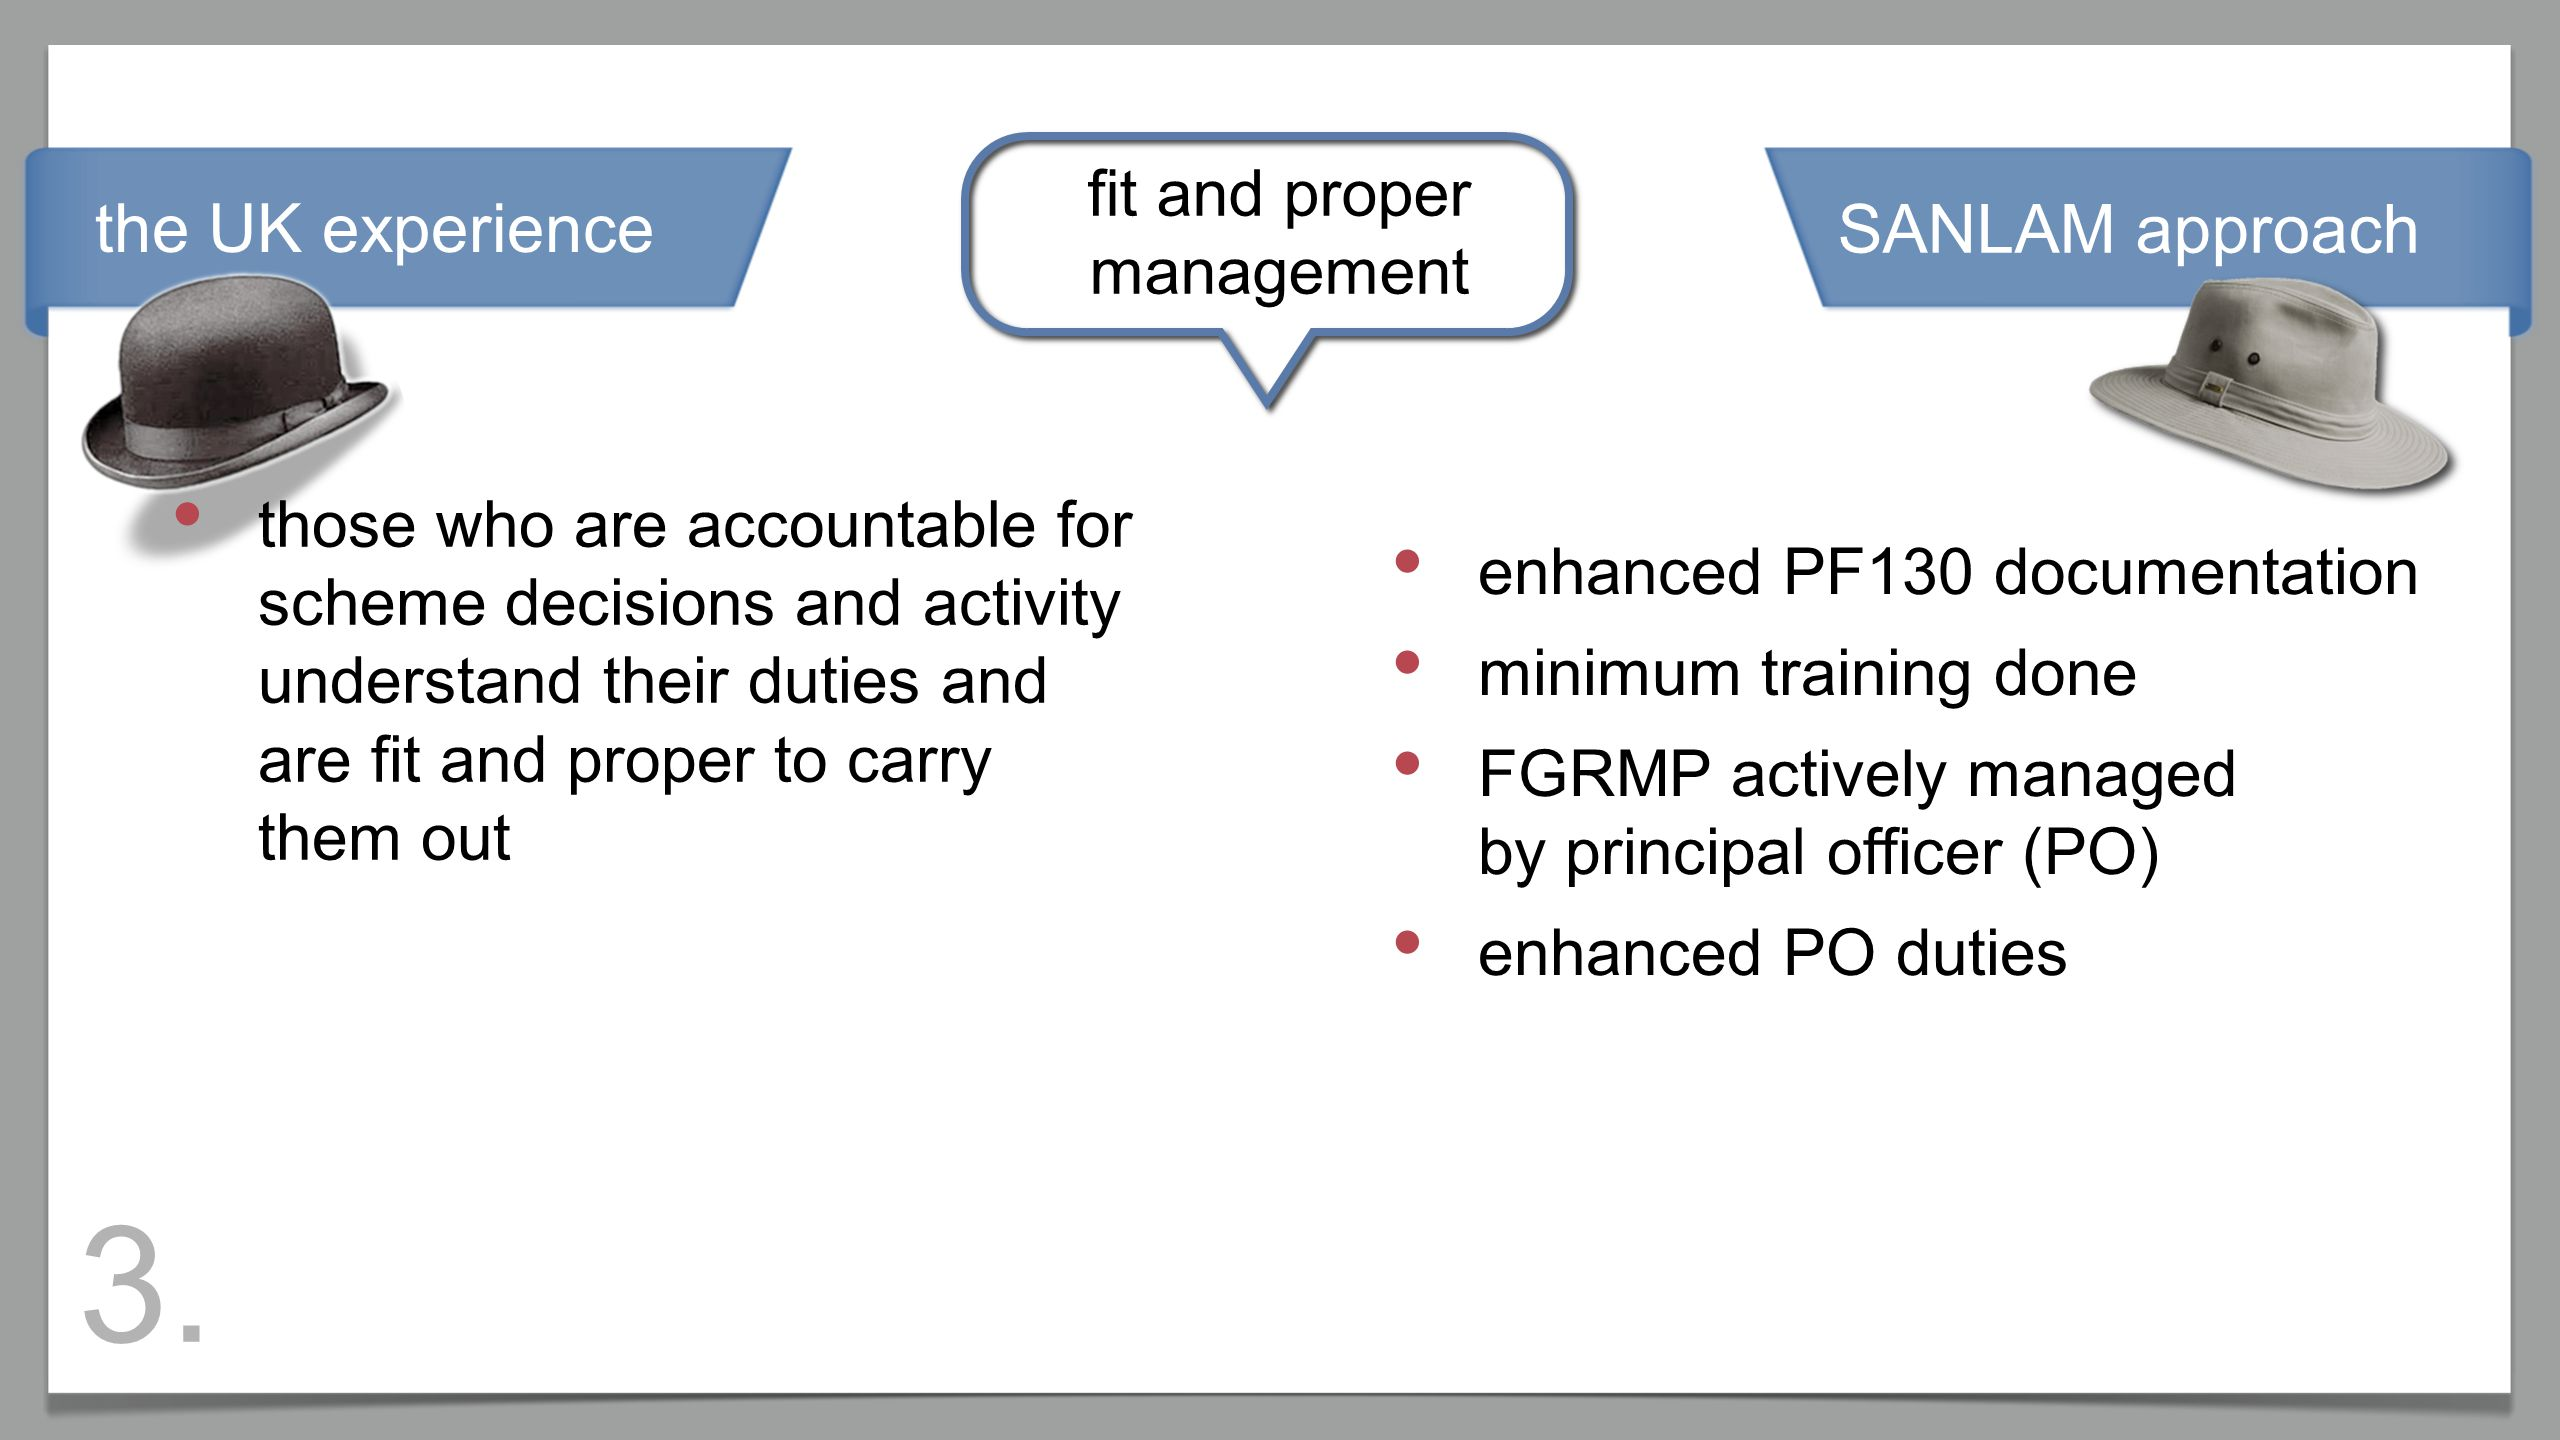 the UK experience fit and proper management those who are accountable for scheme decisions and activity understand their duties and are fit and proper to carry them out enhanced PF130 documentation minimum training done FGRMP actively managed by principal officer (PO) enhanced PO duties SANLAM approach 3.